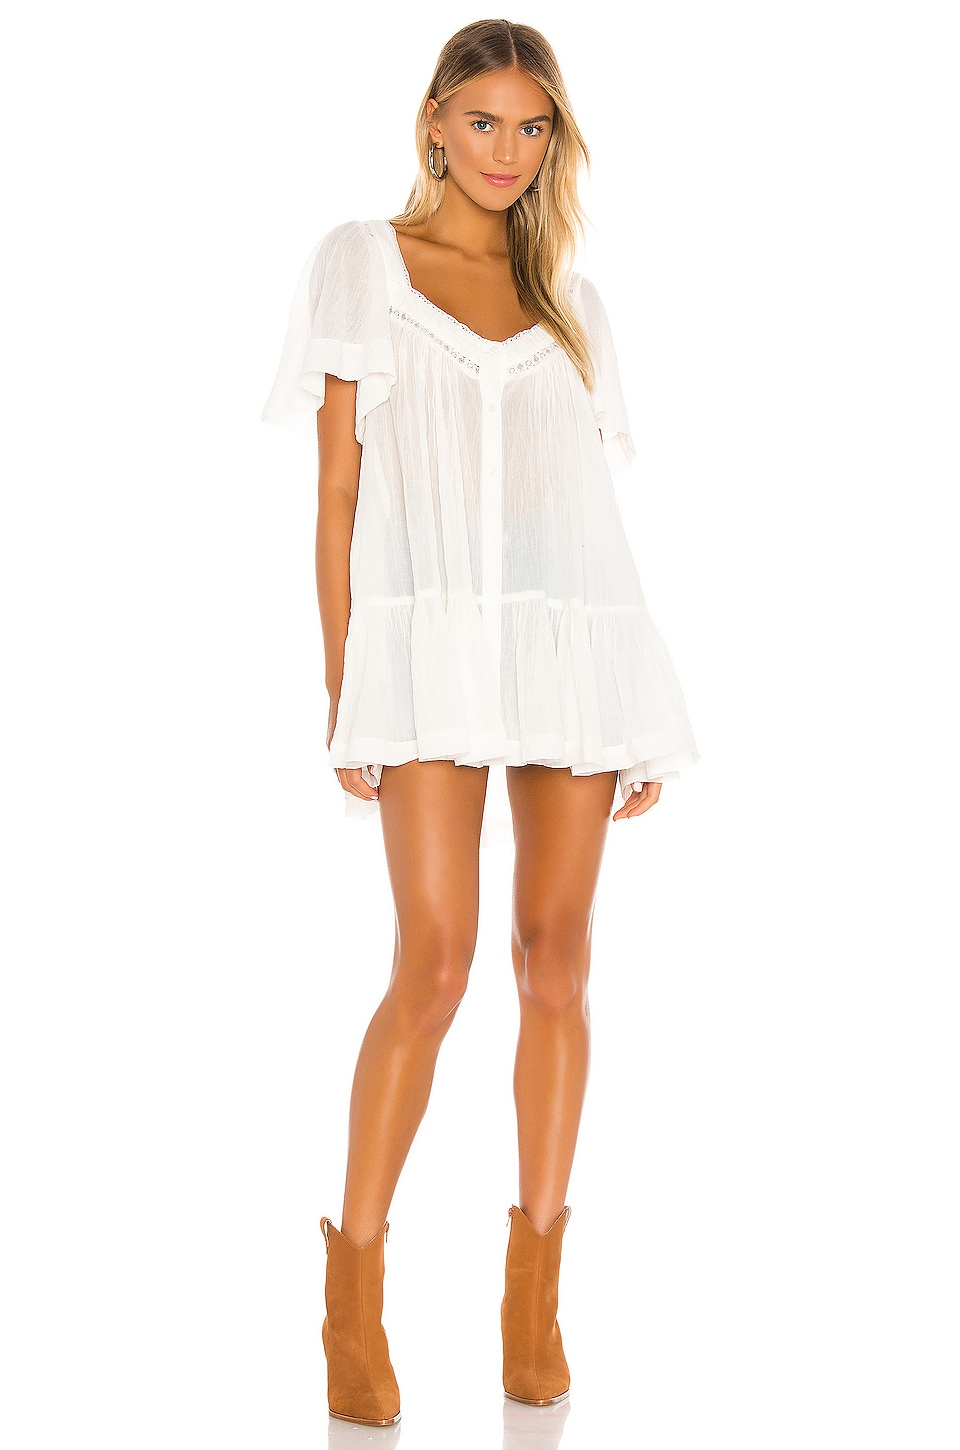 Free People Hearts Desire Mini Dress in White